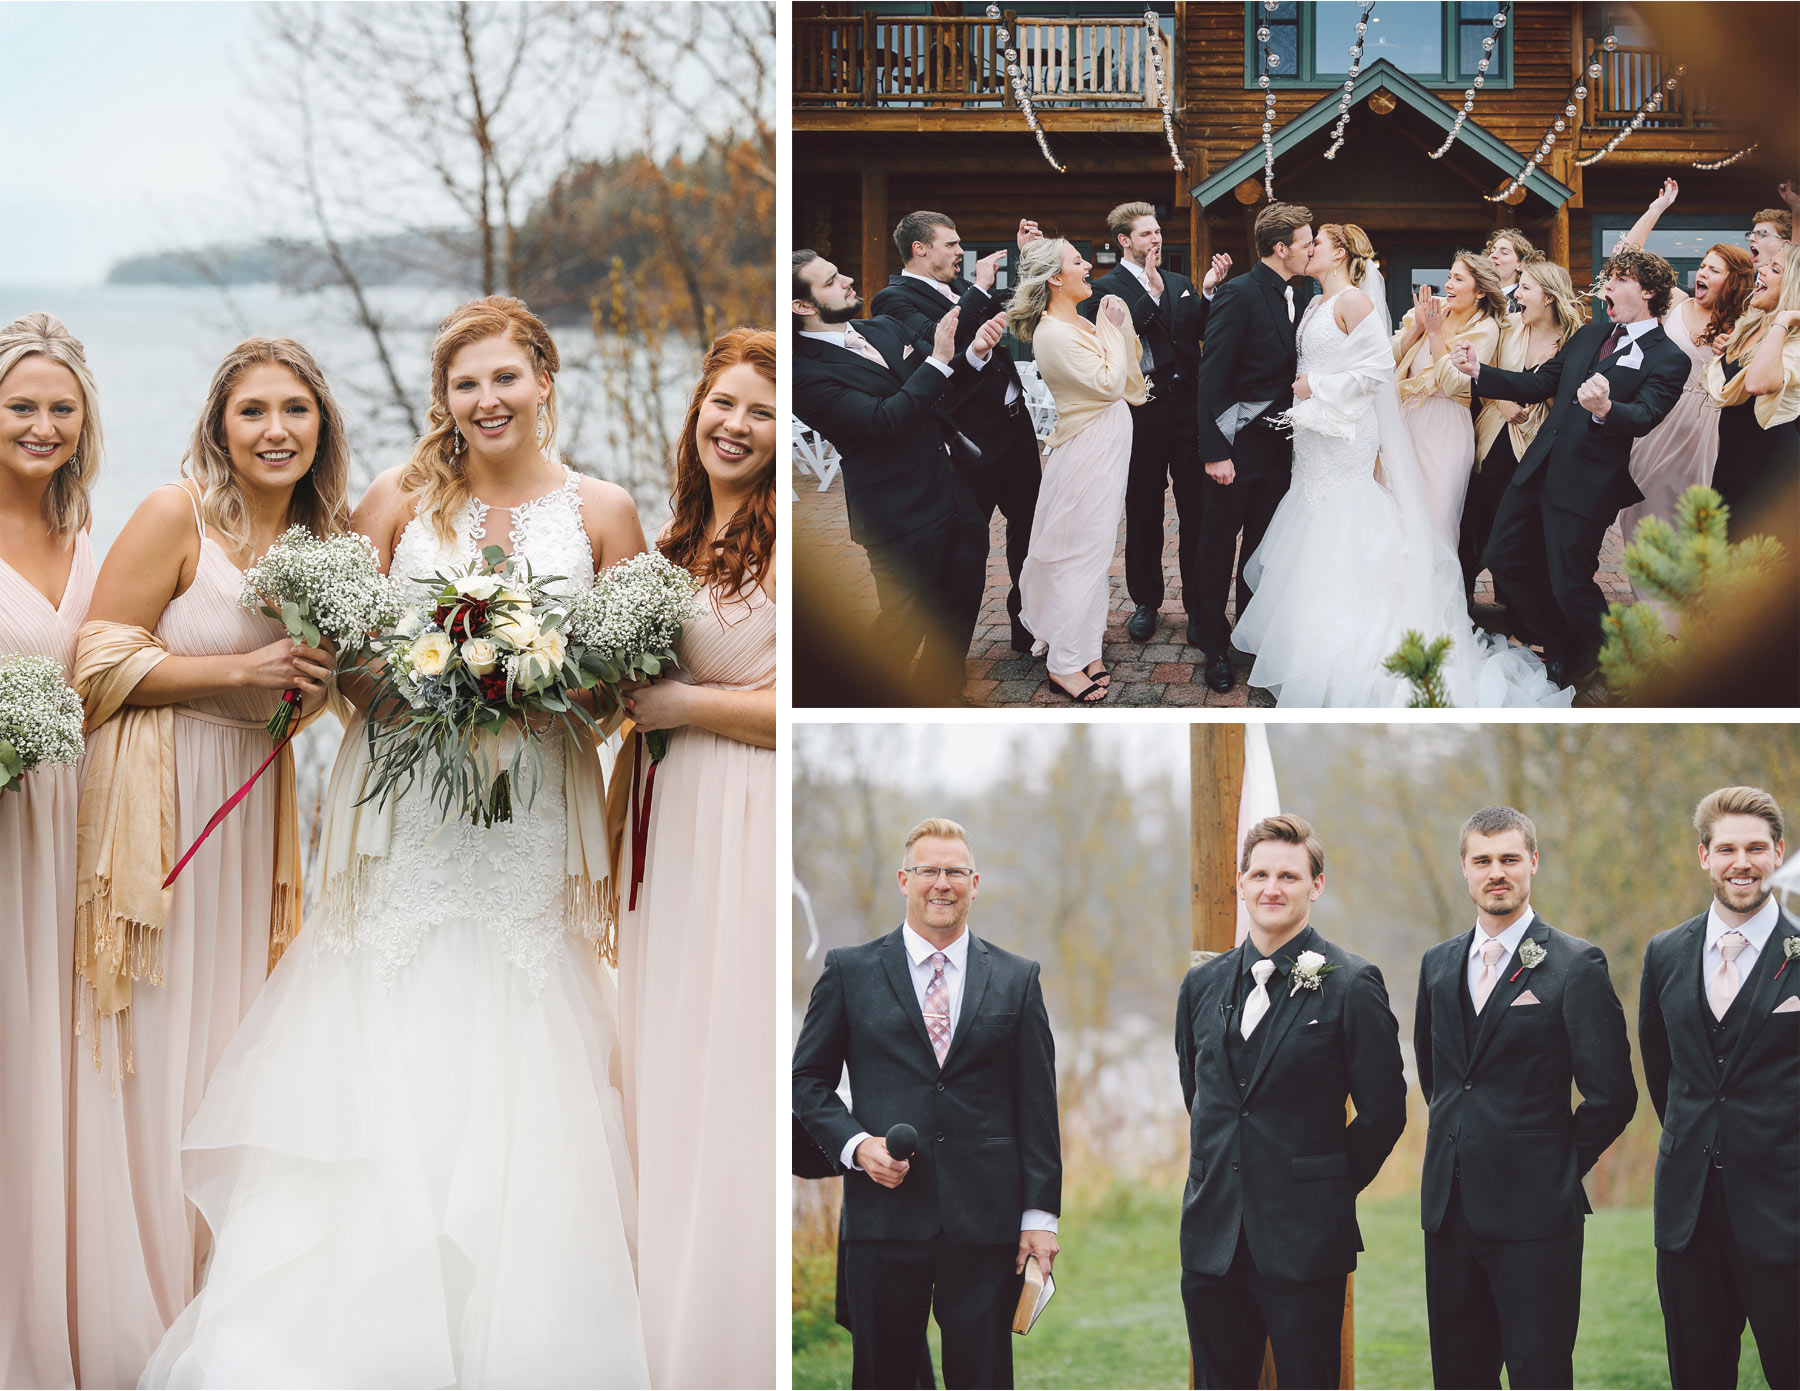 13-Minnesota-Wedding-by-Andrew-Vick-Photography-Grand-Superior-Lodge-Duluth-Two-Harbors-Wedding-Party-Groomsmen-Bridesmaids-Outdoor-Veronica-and-Tyler.jpg